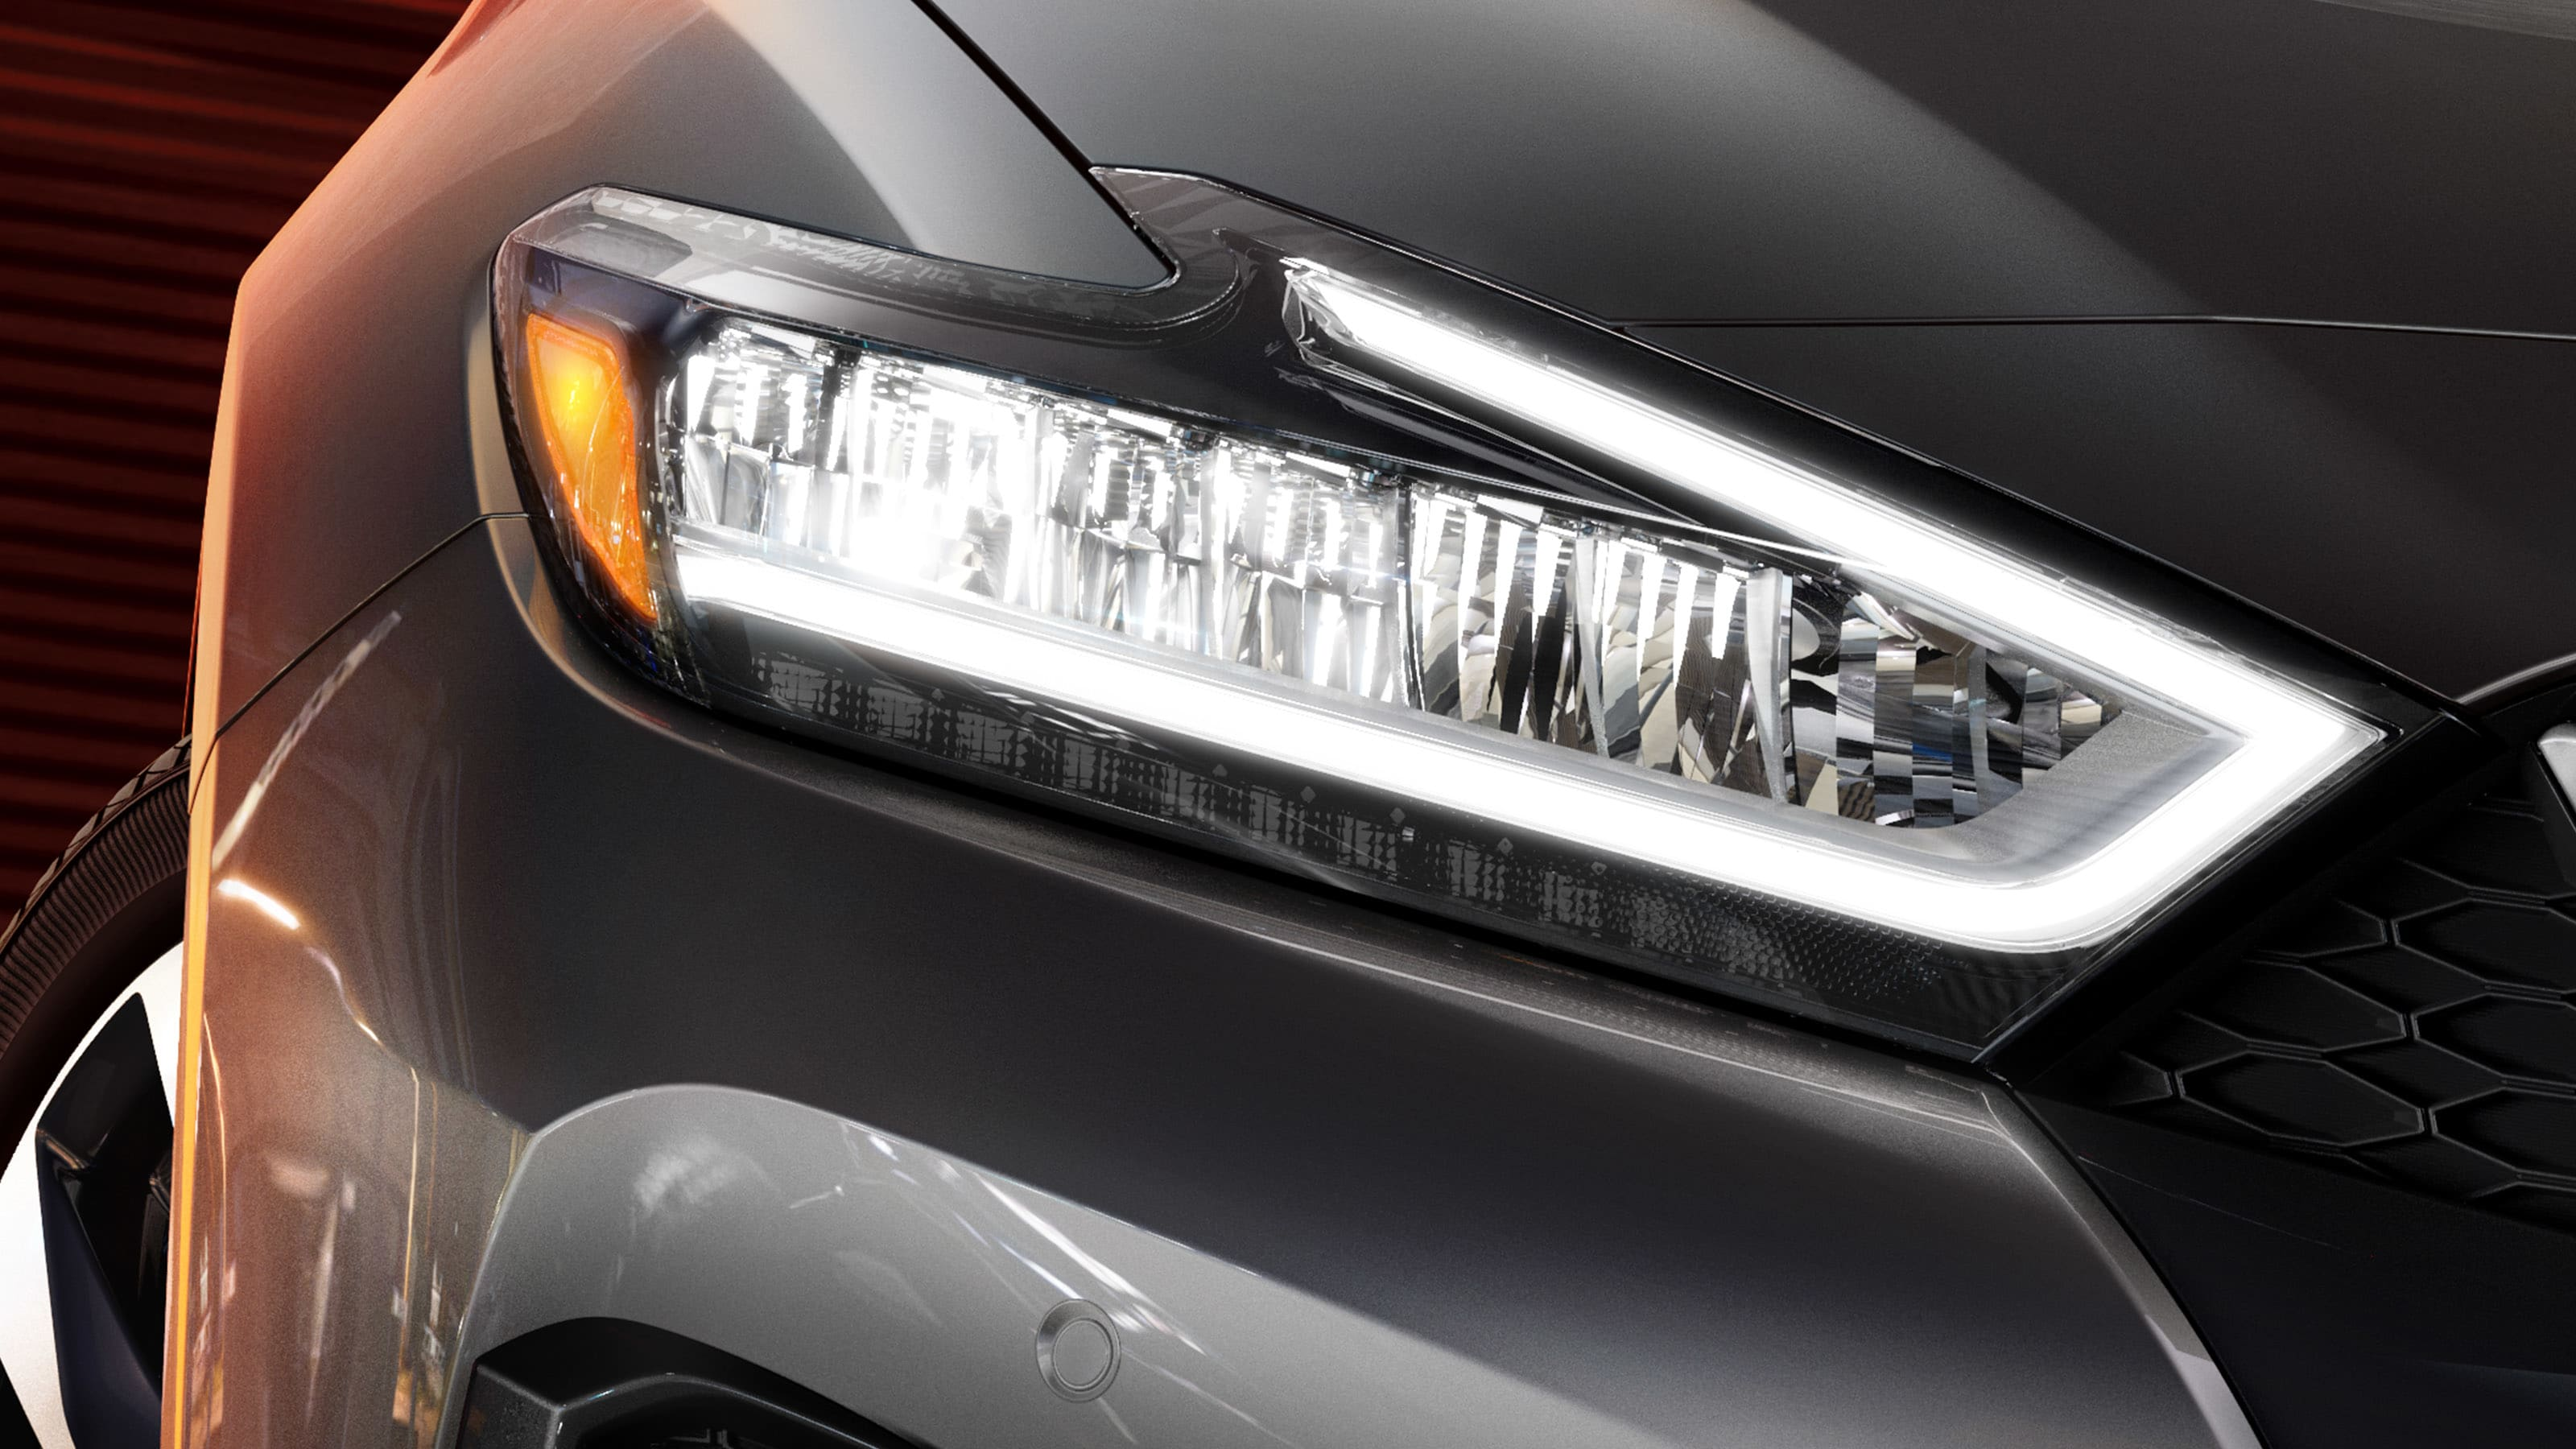 2019 Nissan Maxima head lamps